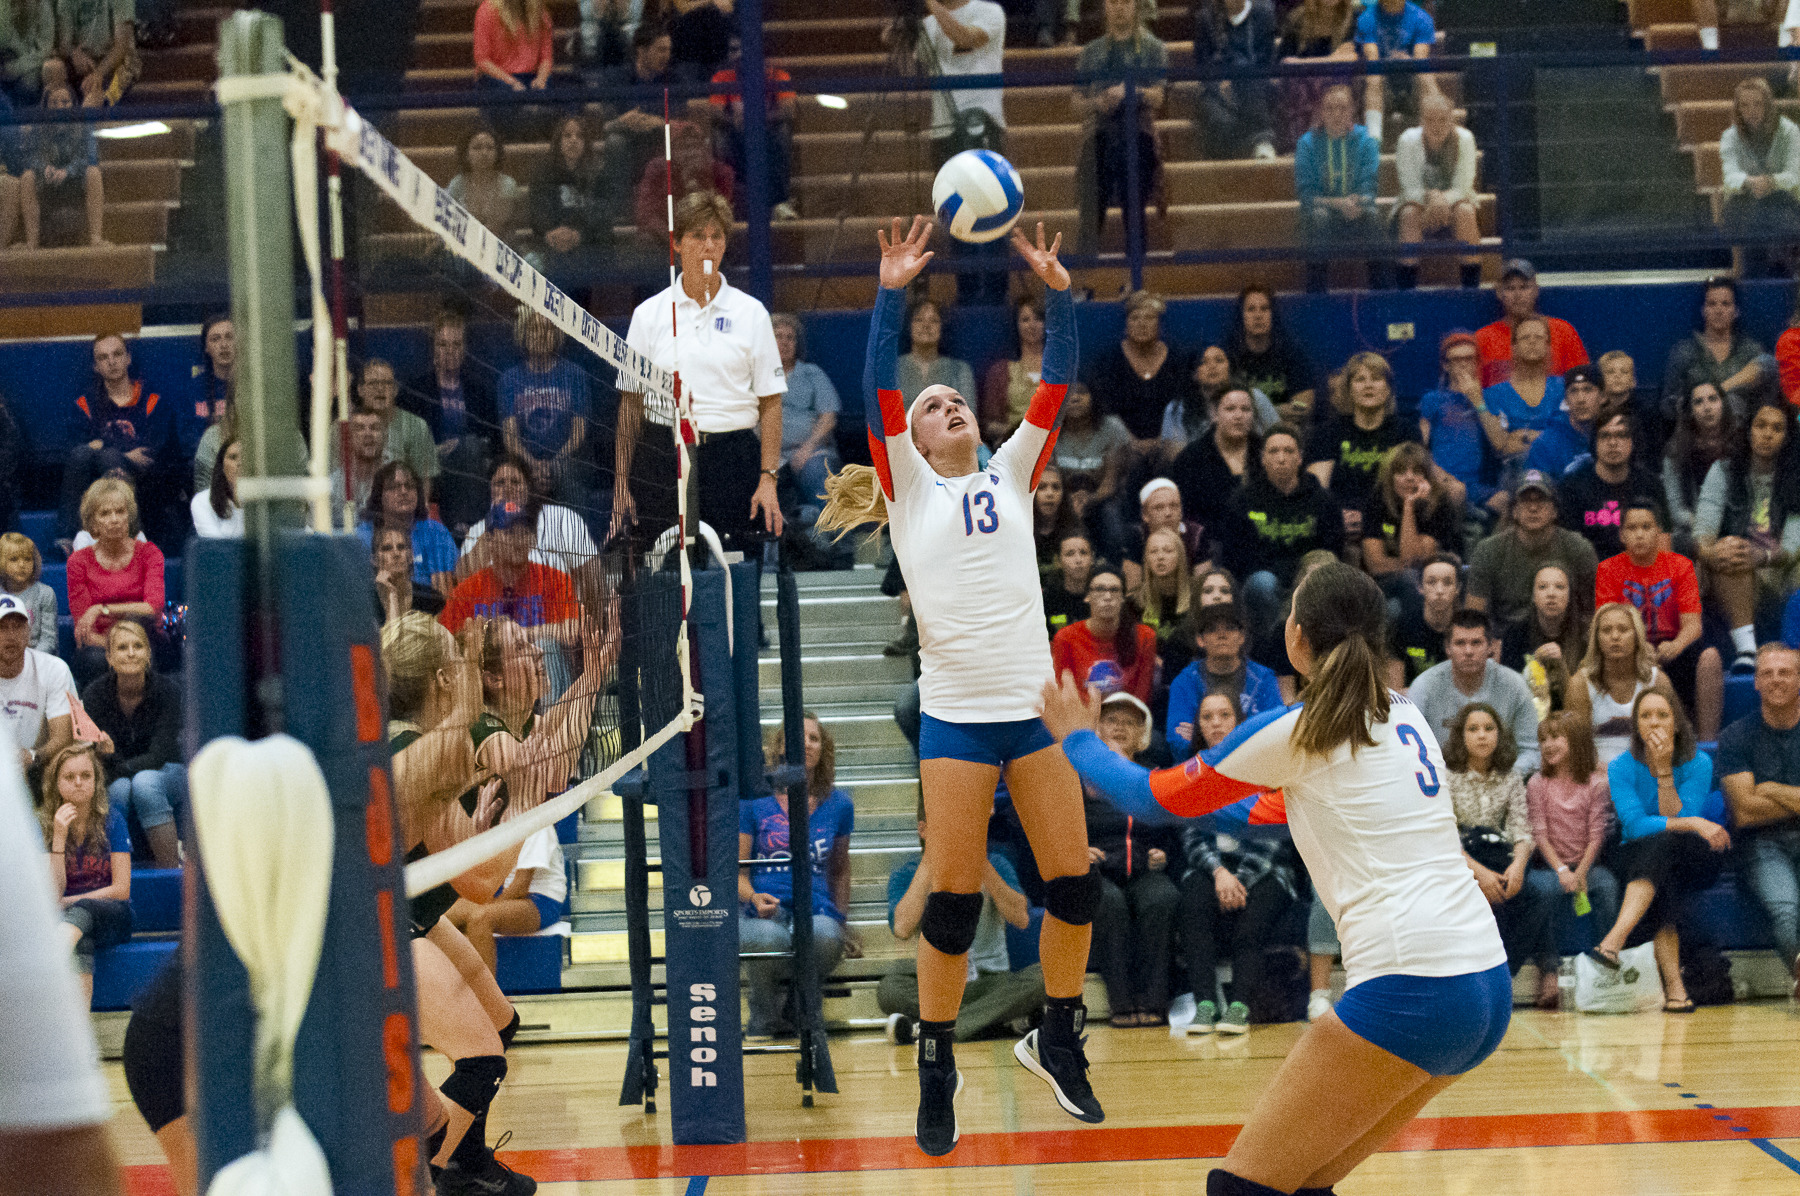 Sarah Baugh became 12th Bronco ever to reach 1,000 assists in a season.